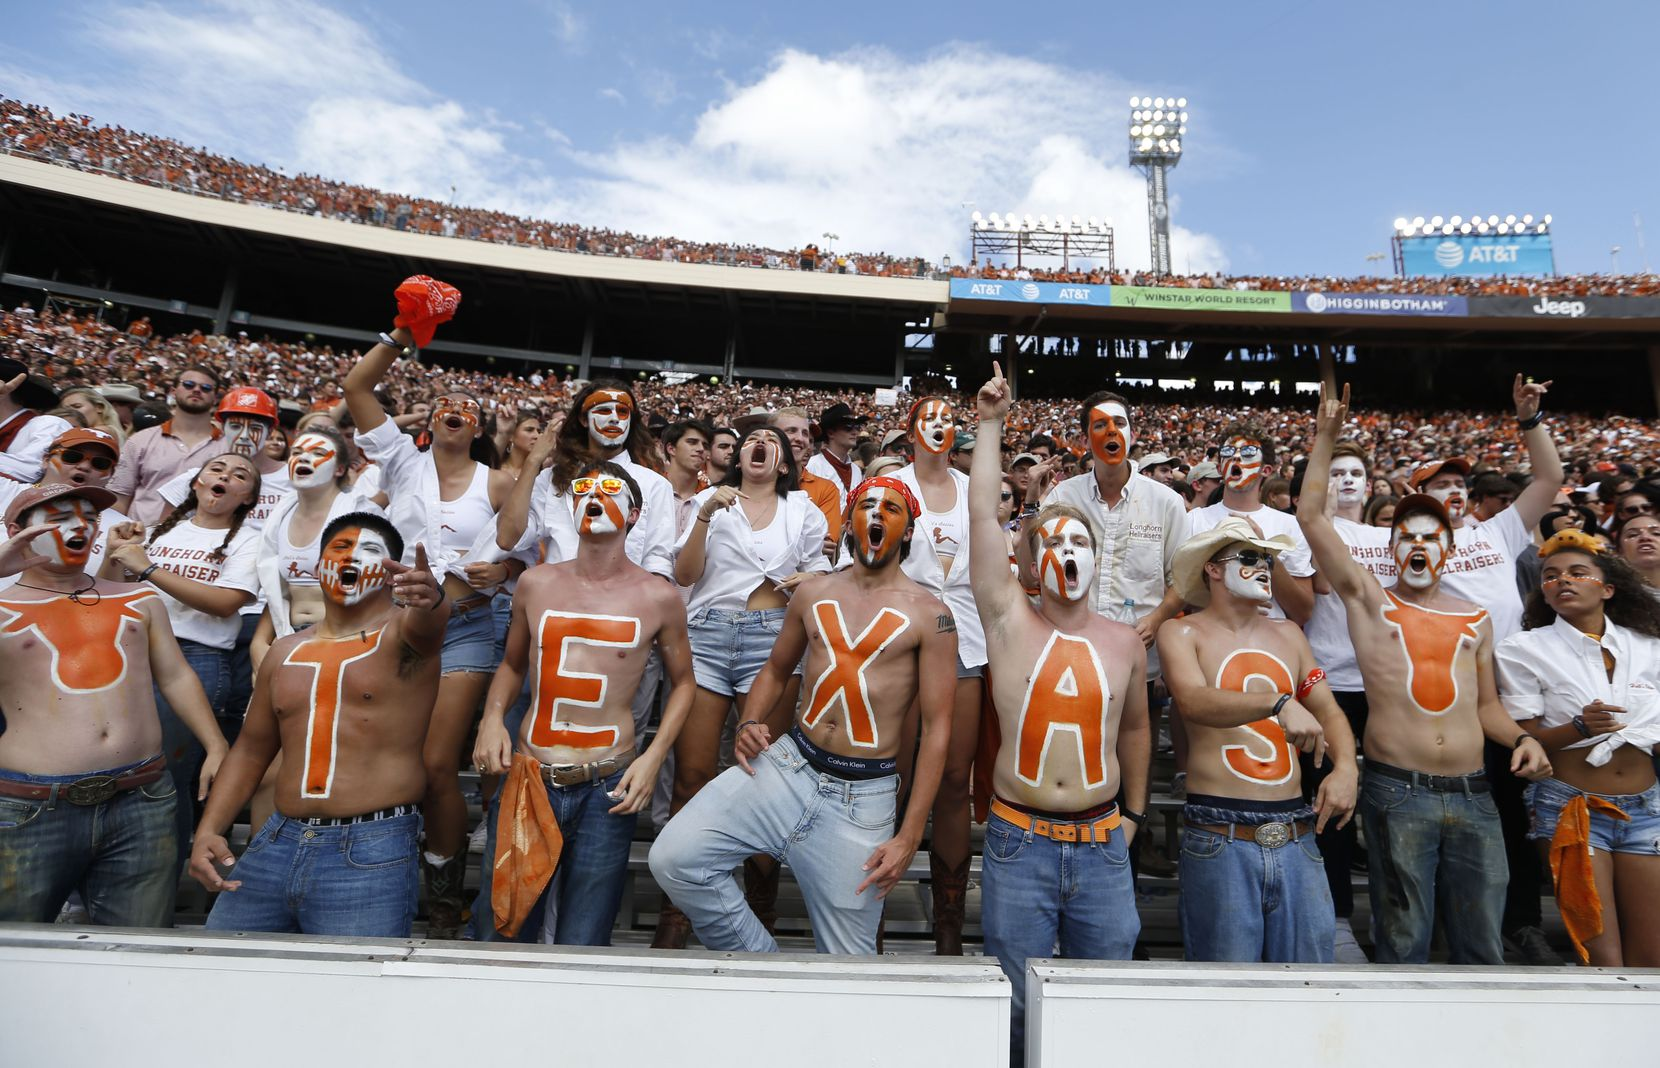 Texas Longhorns fans cheer for their team during the second half of play at the Cotton Bowl in Dallas on Saturday, October 6, 2018.